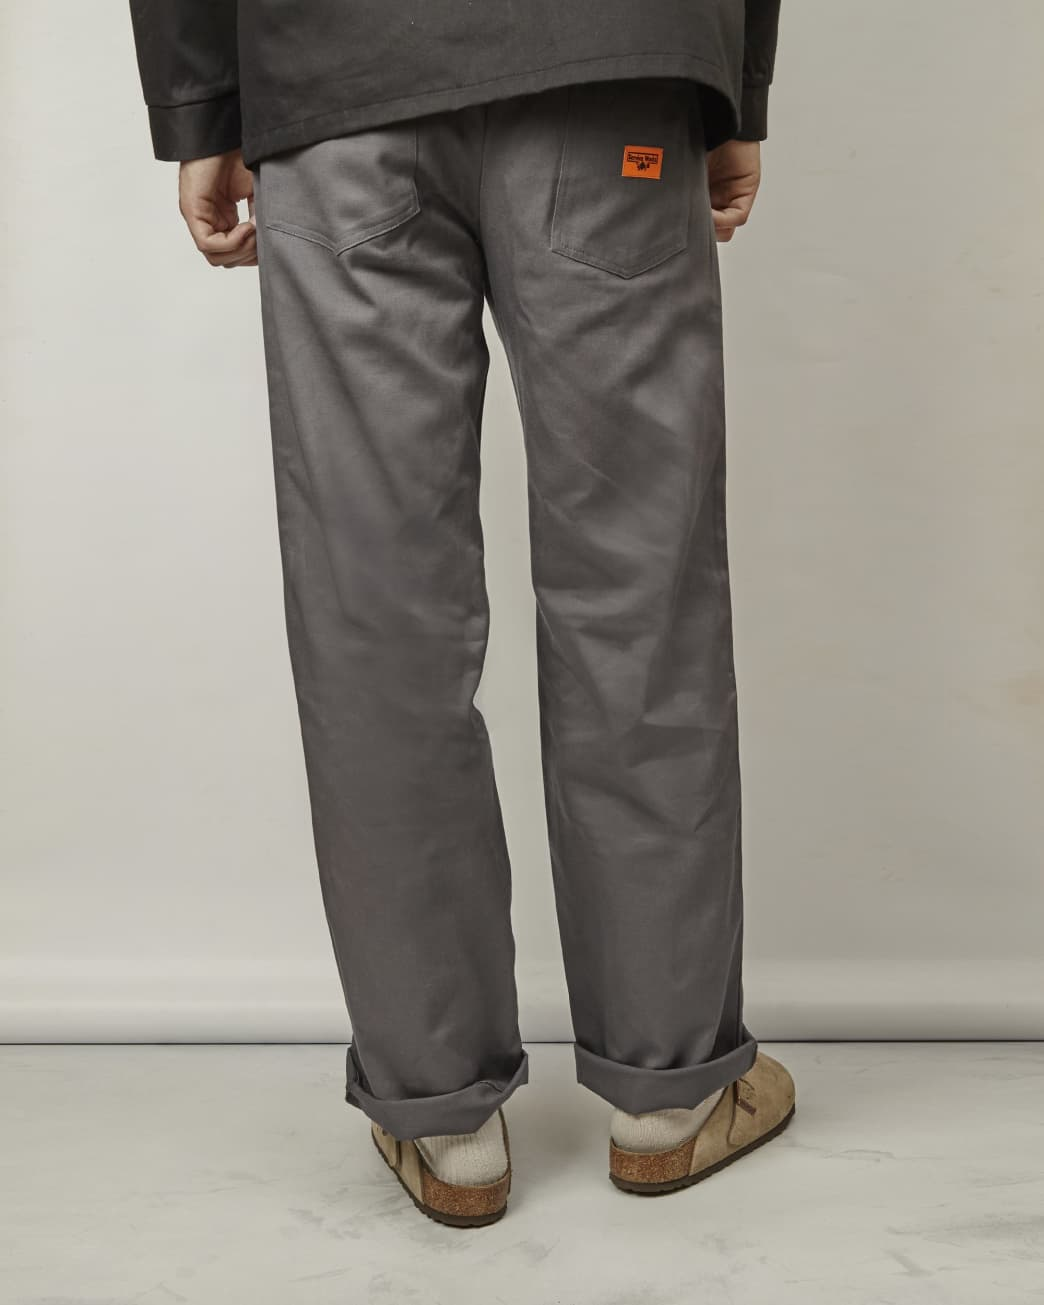 Service Works - Classic Chef Pants - Indigo Denim   Trousers by Service Works 8